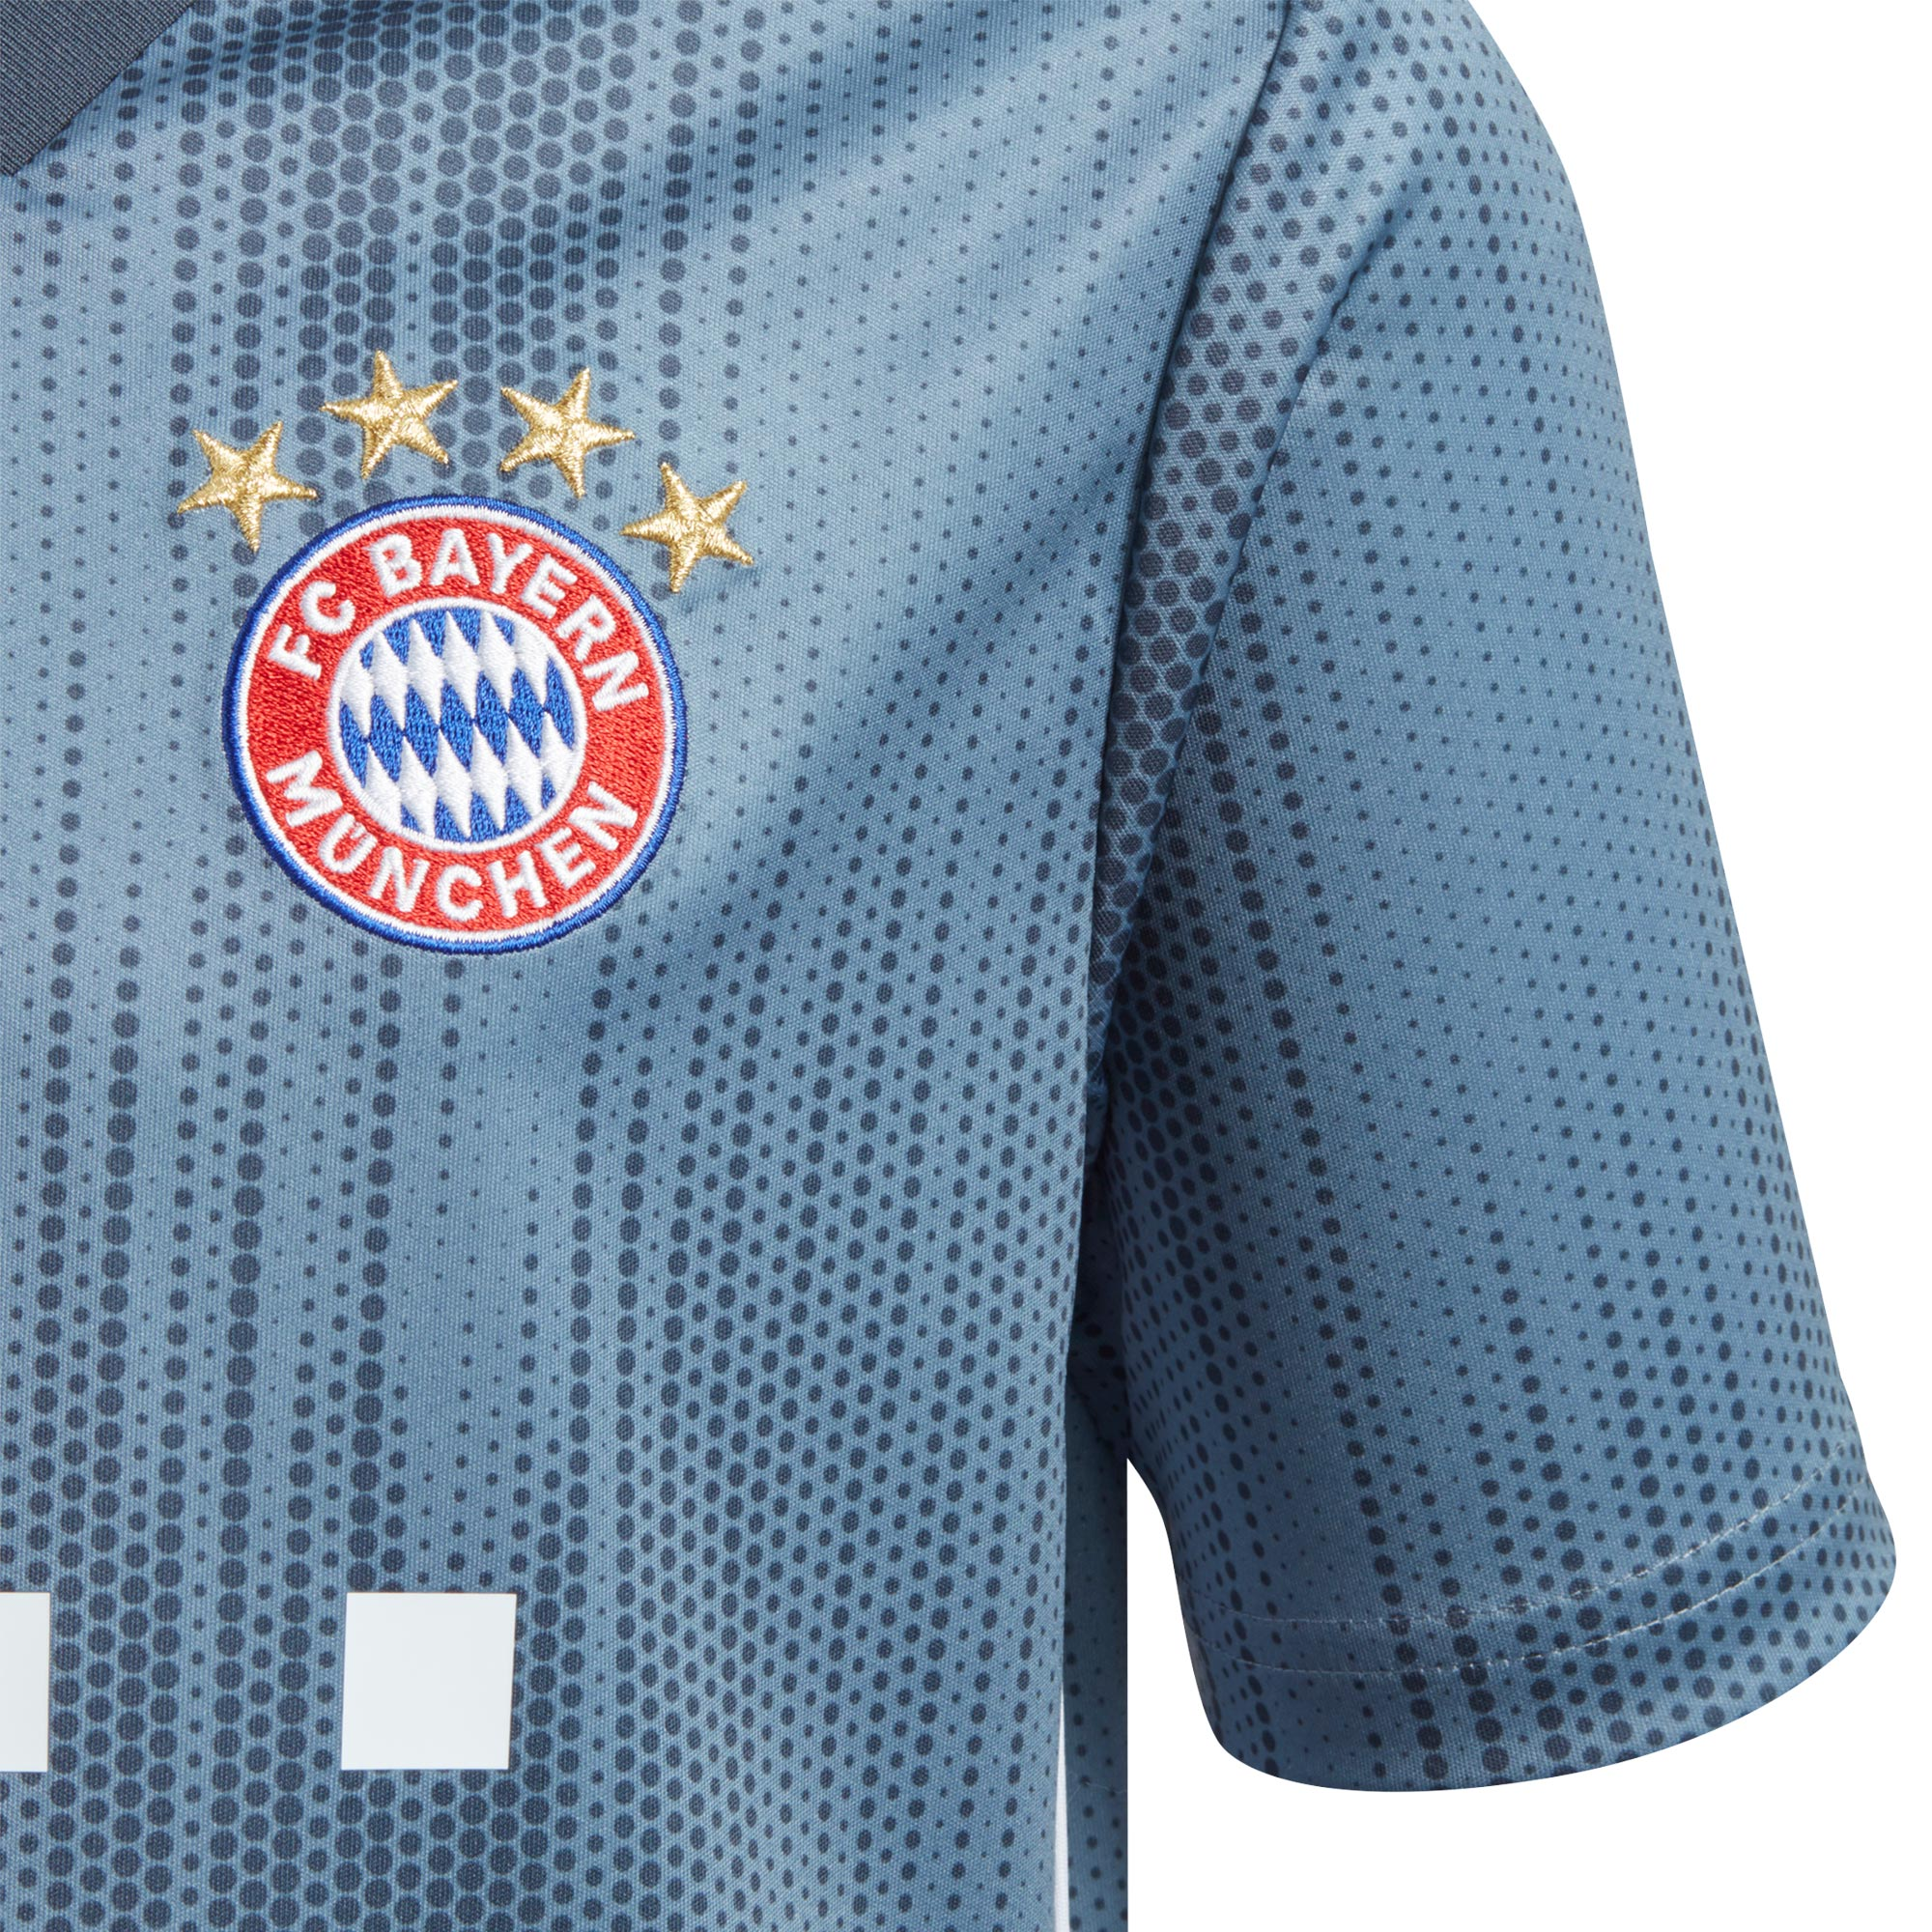 53ad9fae0 ... Click to enlarge image bayern munich 18 19 adidas third kit c.jpg ...